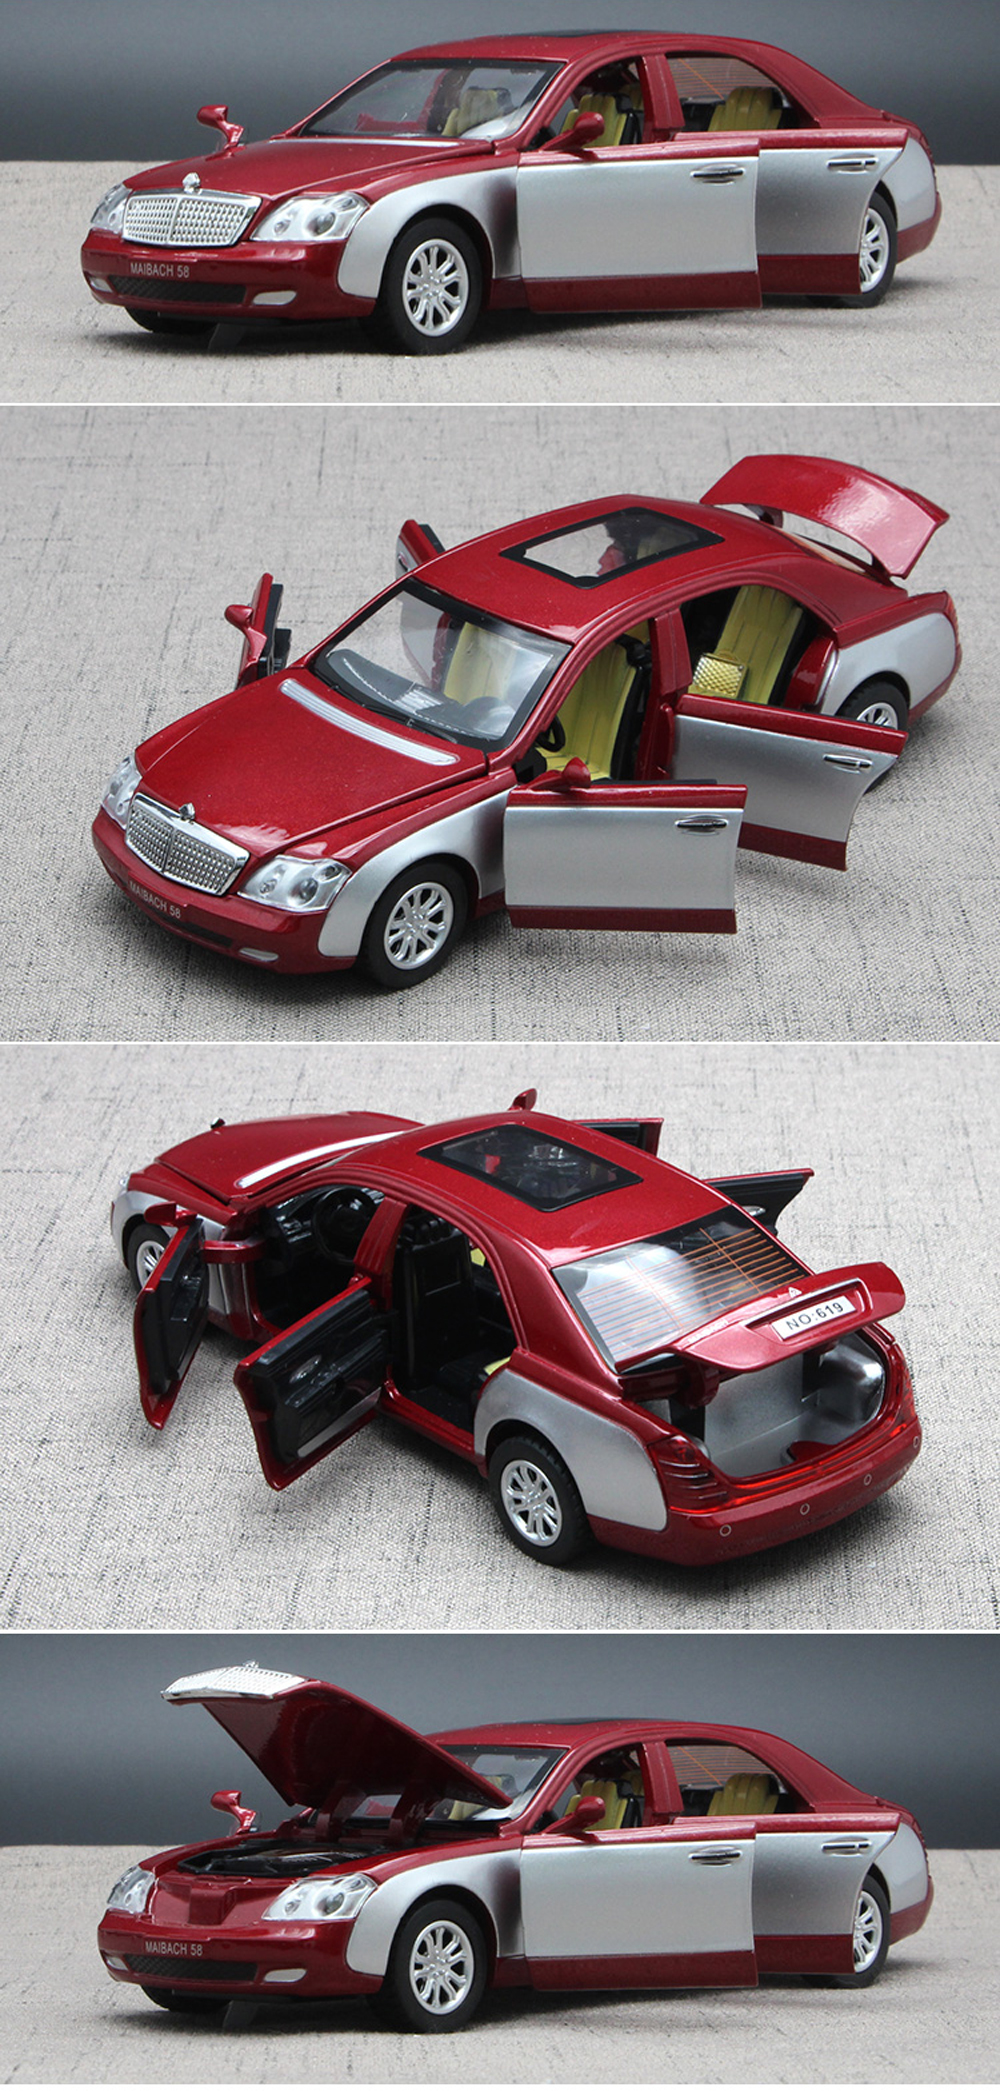 diecast-maybach-model-car-replica-TOy-car_05_04